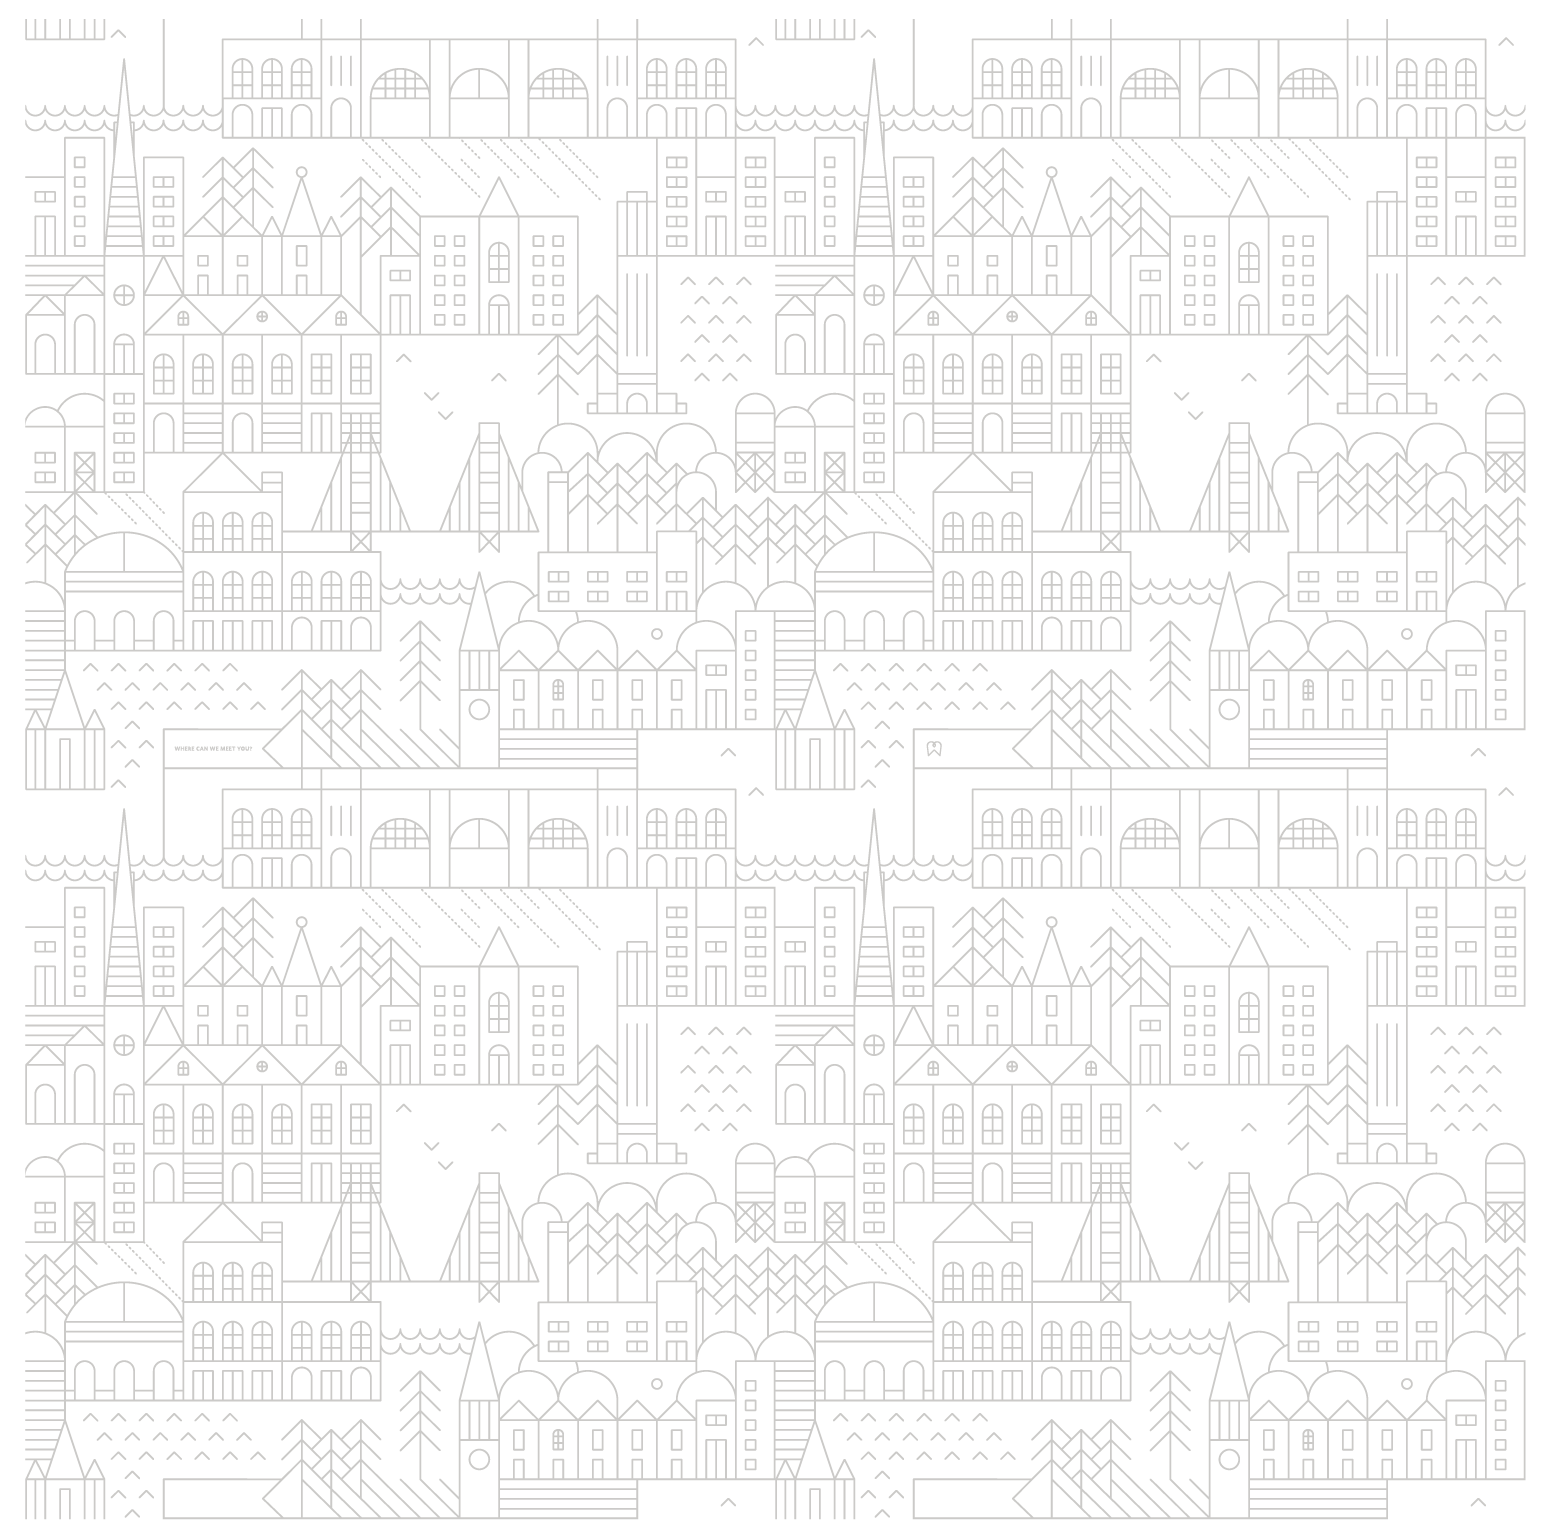 porcelane_city_pattern.jpg